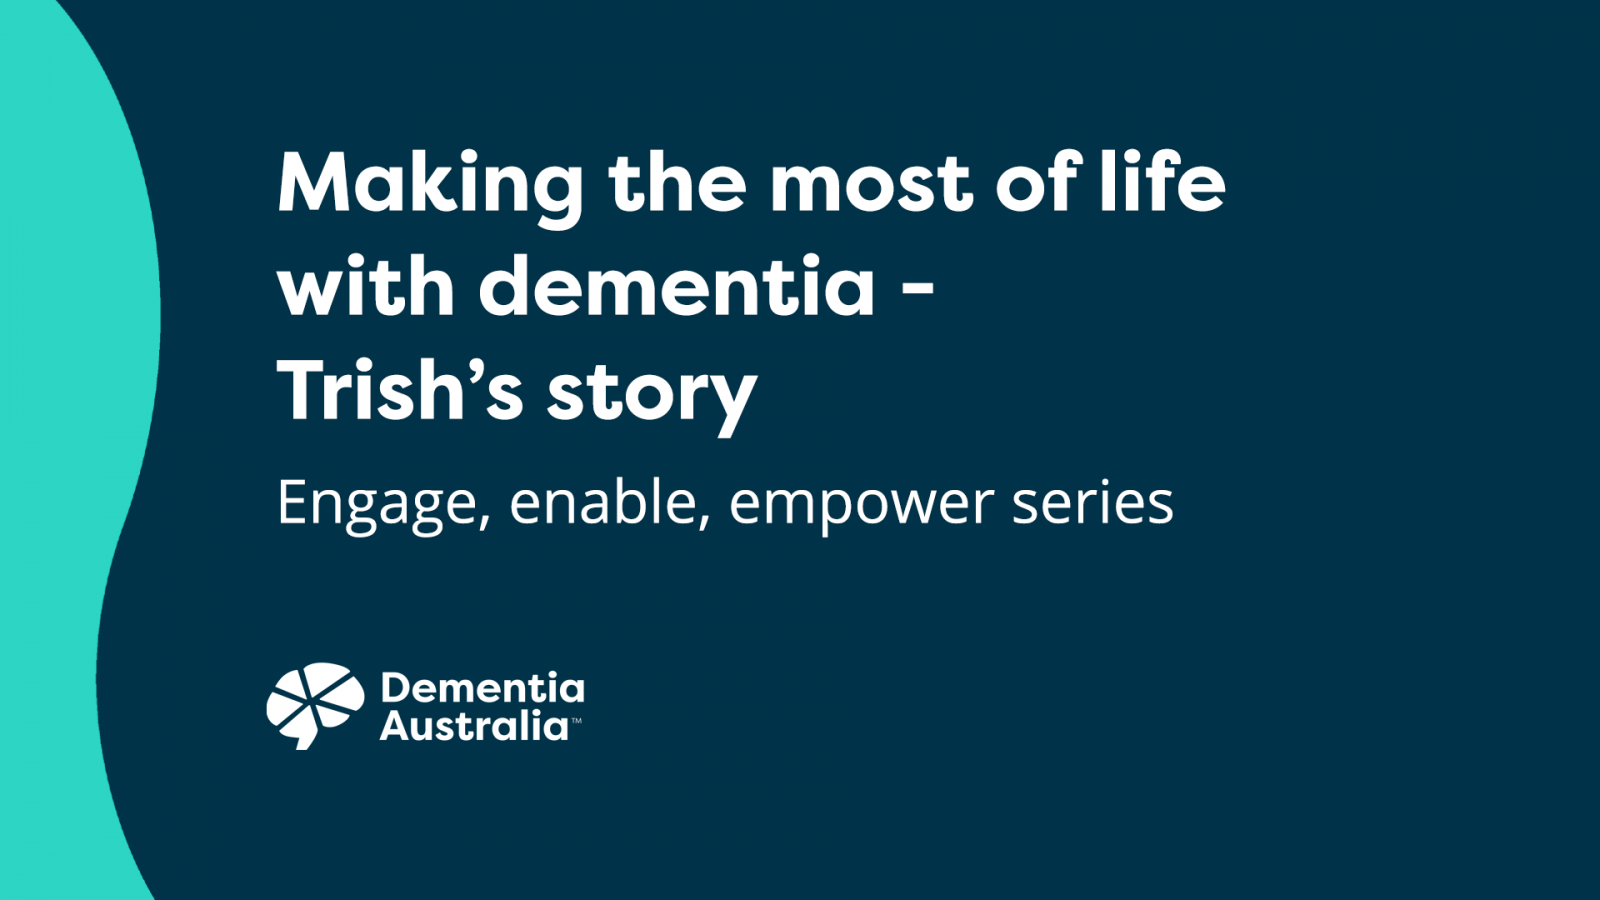 Making the most of life with dementia - Trish's story - video thumbnail